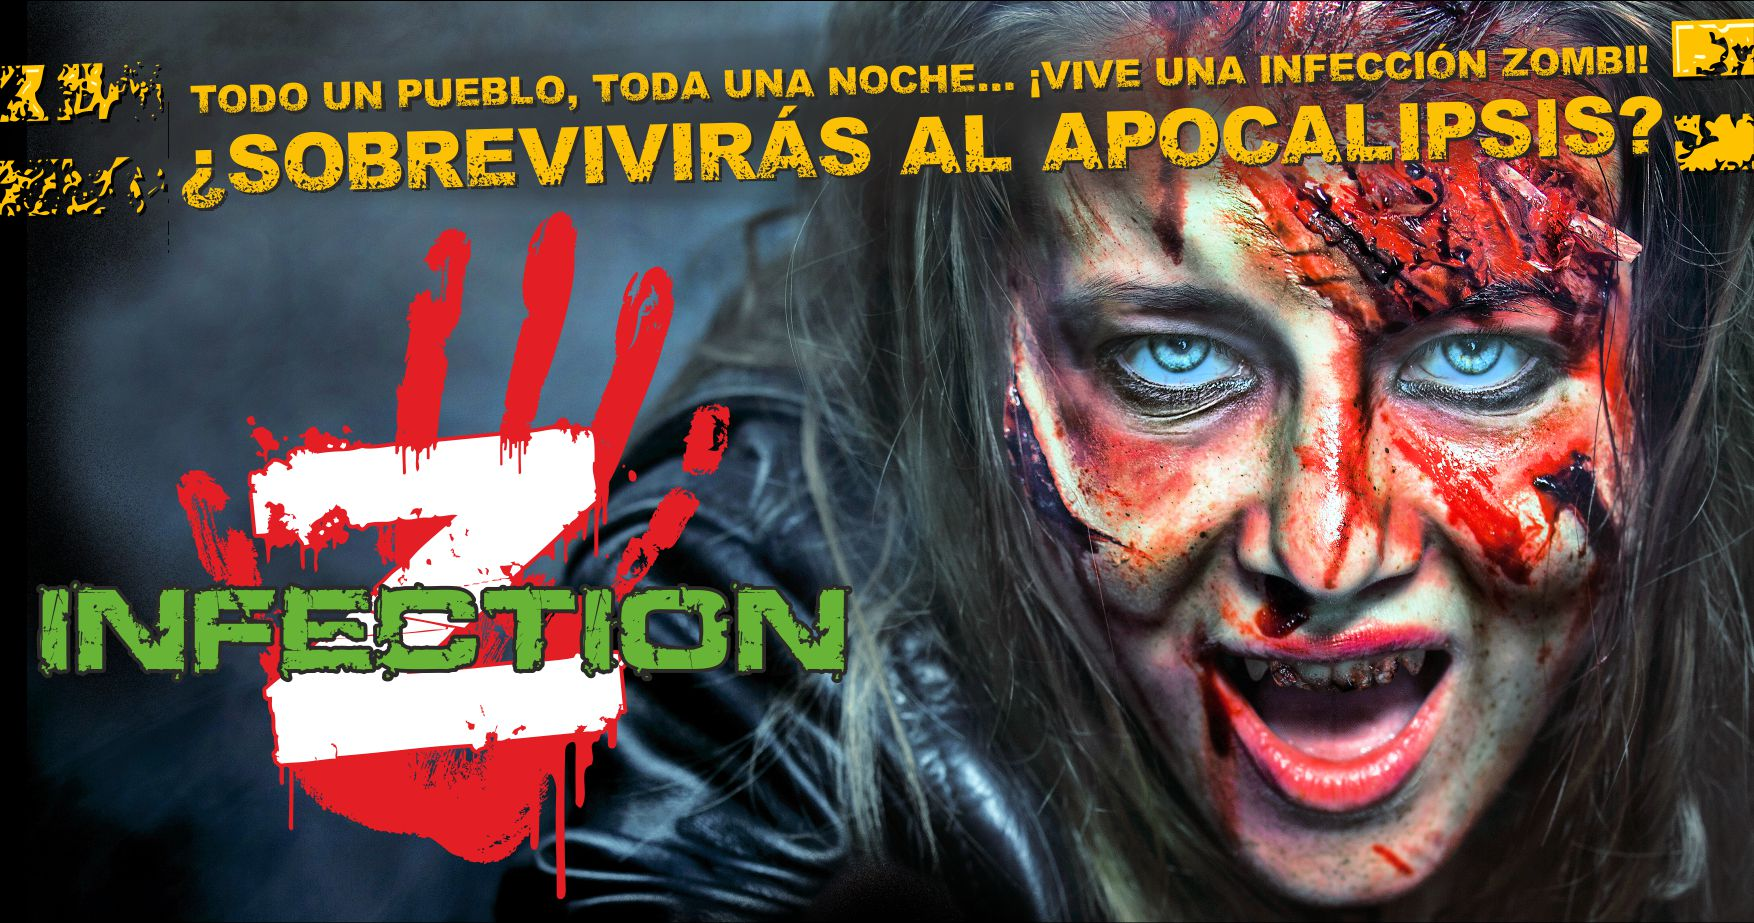 Z-Infection Llagostera